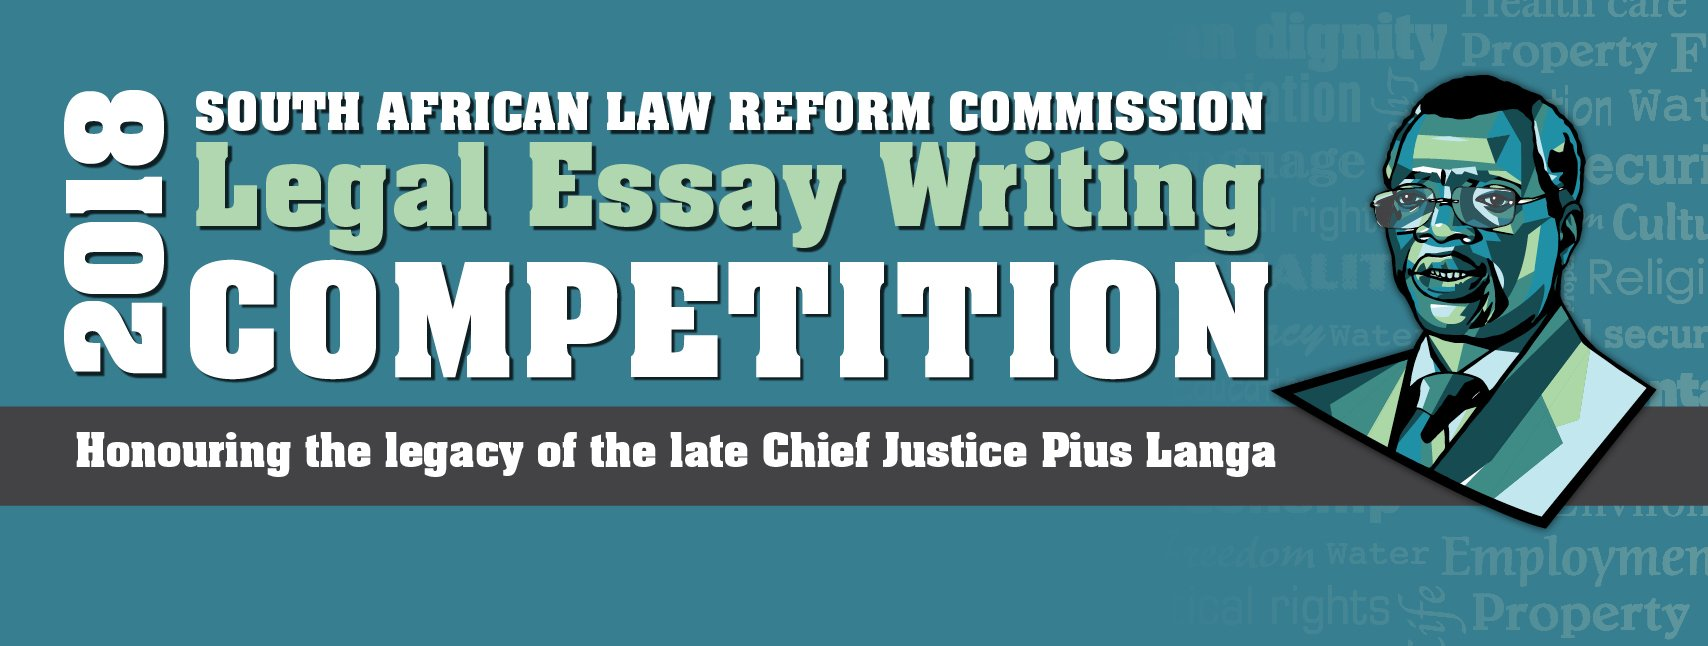 South African Law Reform Commission Legal Essay Competition